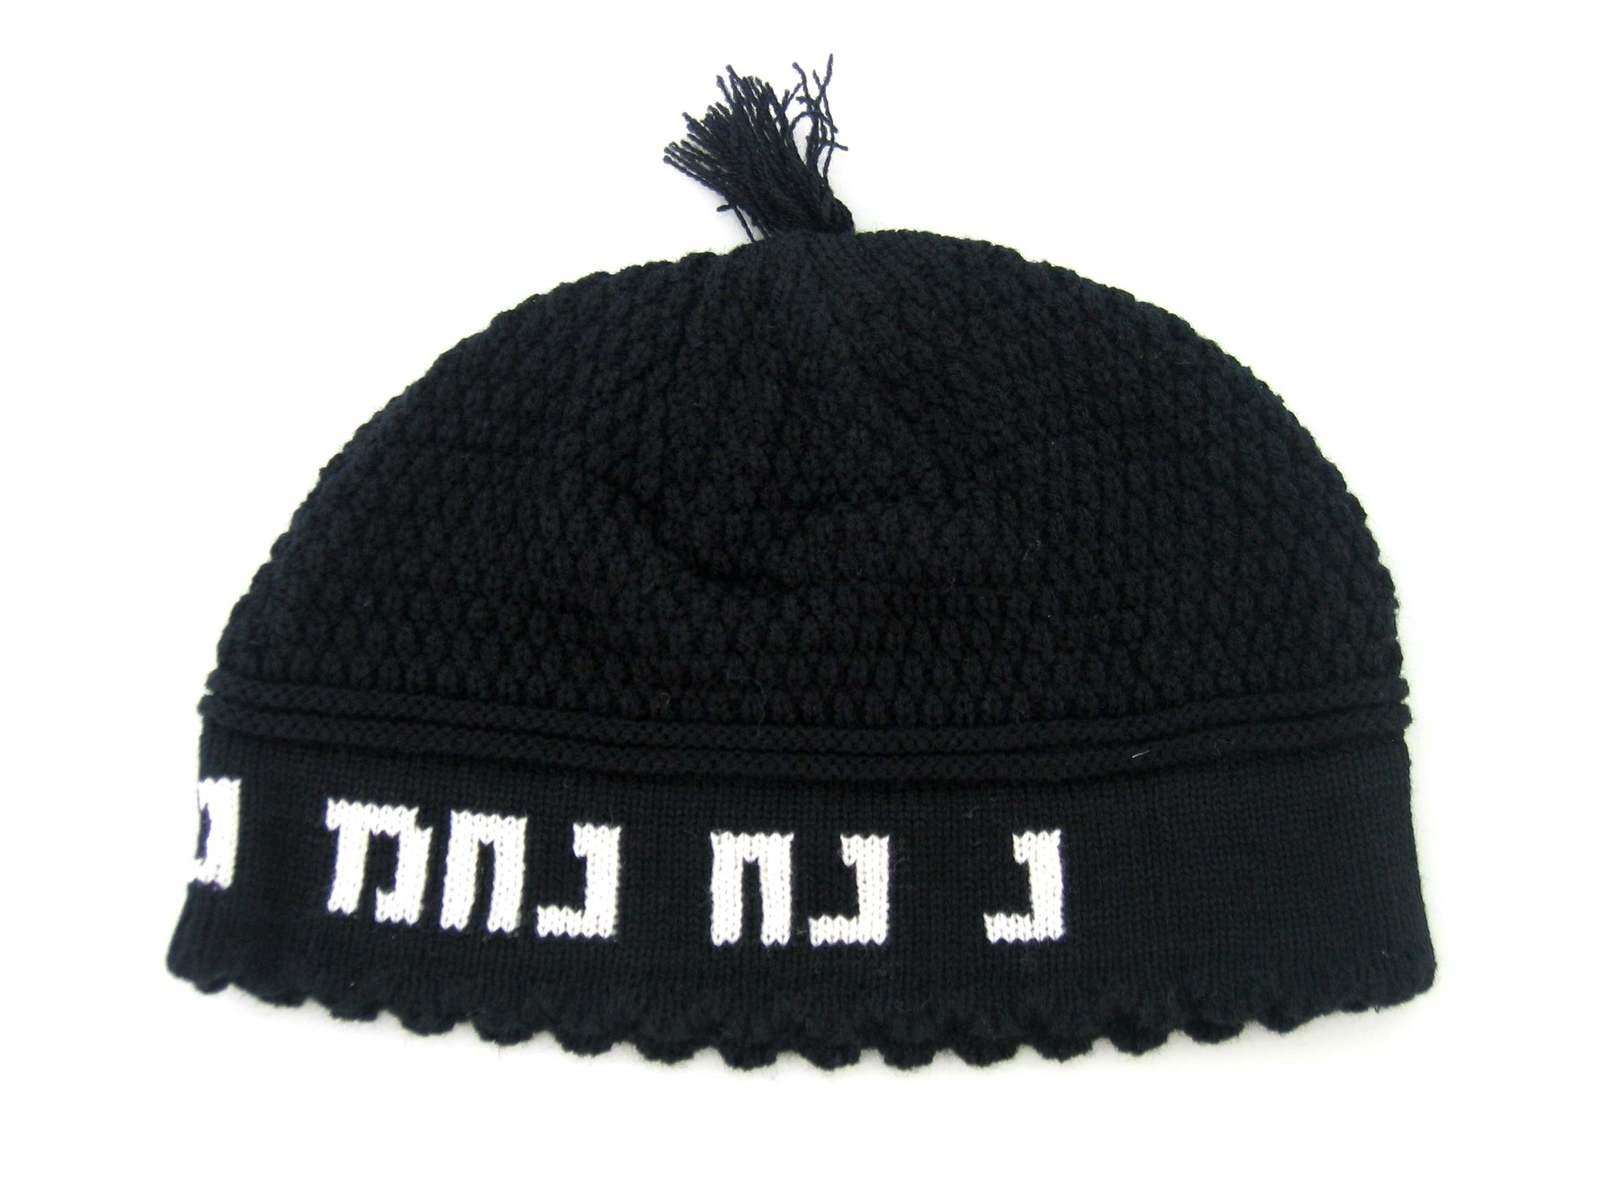 Judaica Nachman Frik Freak Kippah Yarmulke Black White Israel 24 cm 100% Cotton